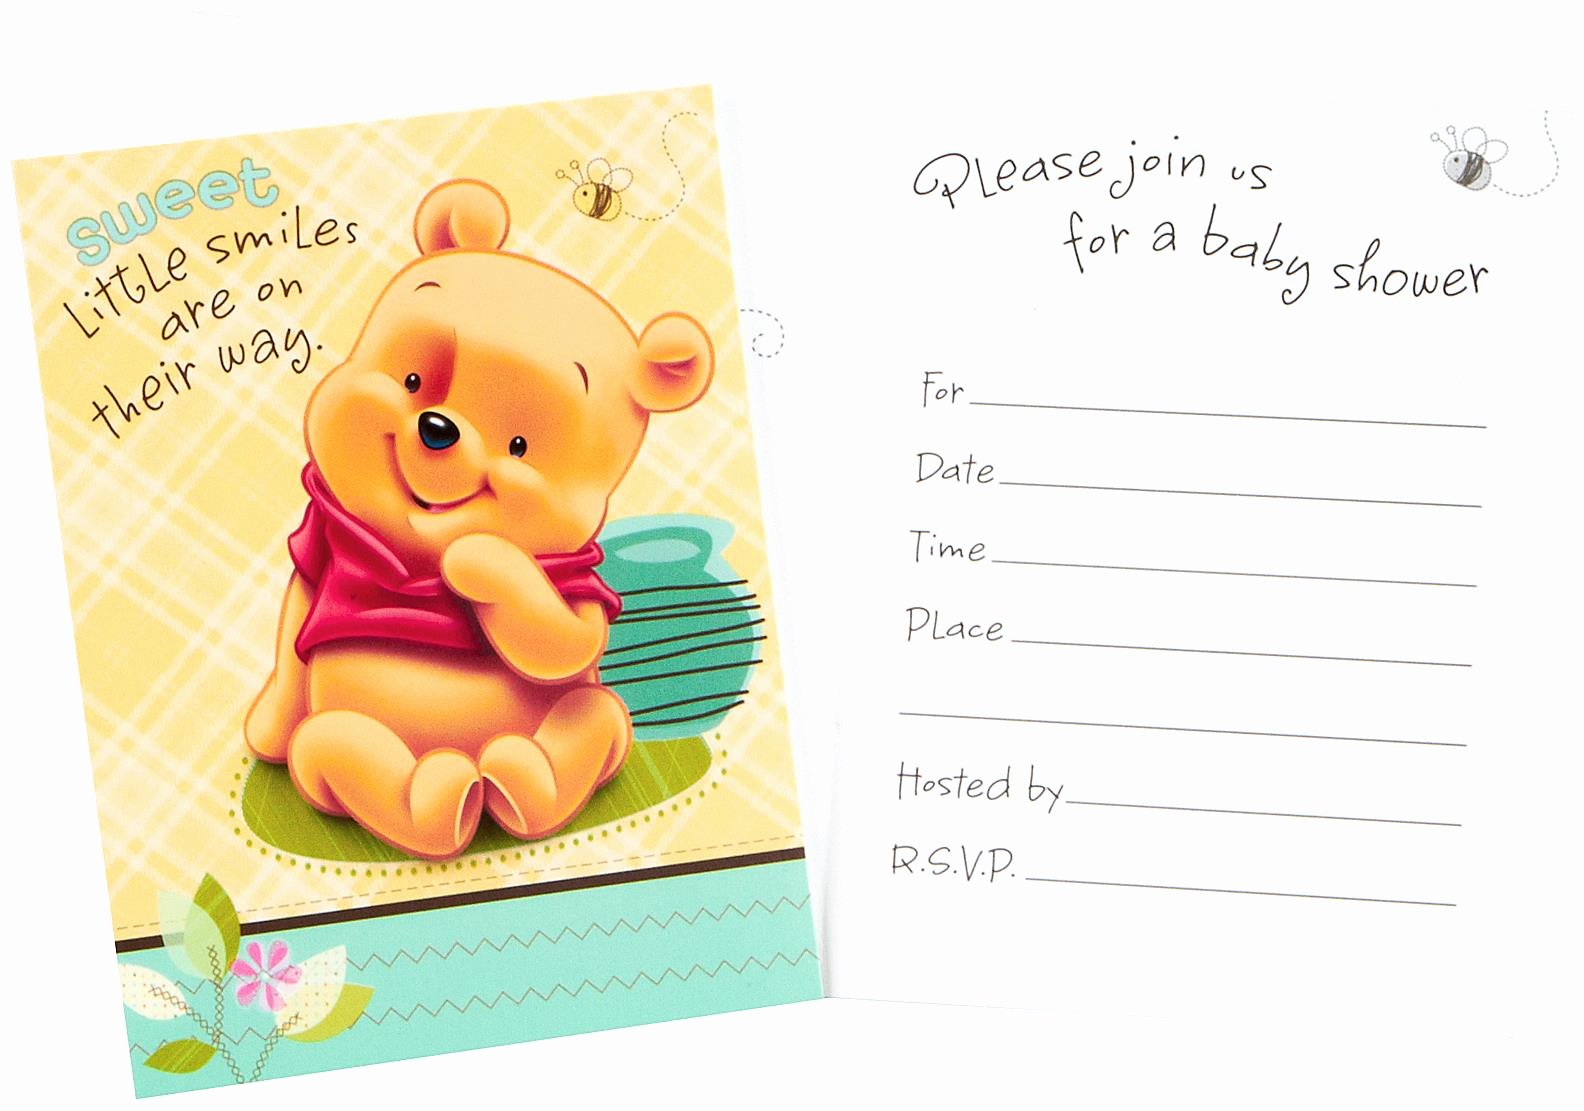 Disney Baby Shower Invitations Inspirational Disney Baby Pooh and Friends Baby Shower Invitations